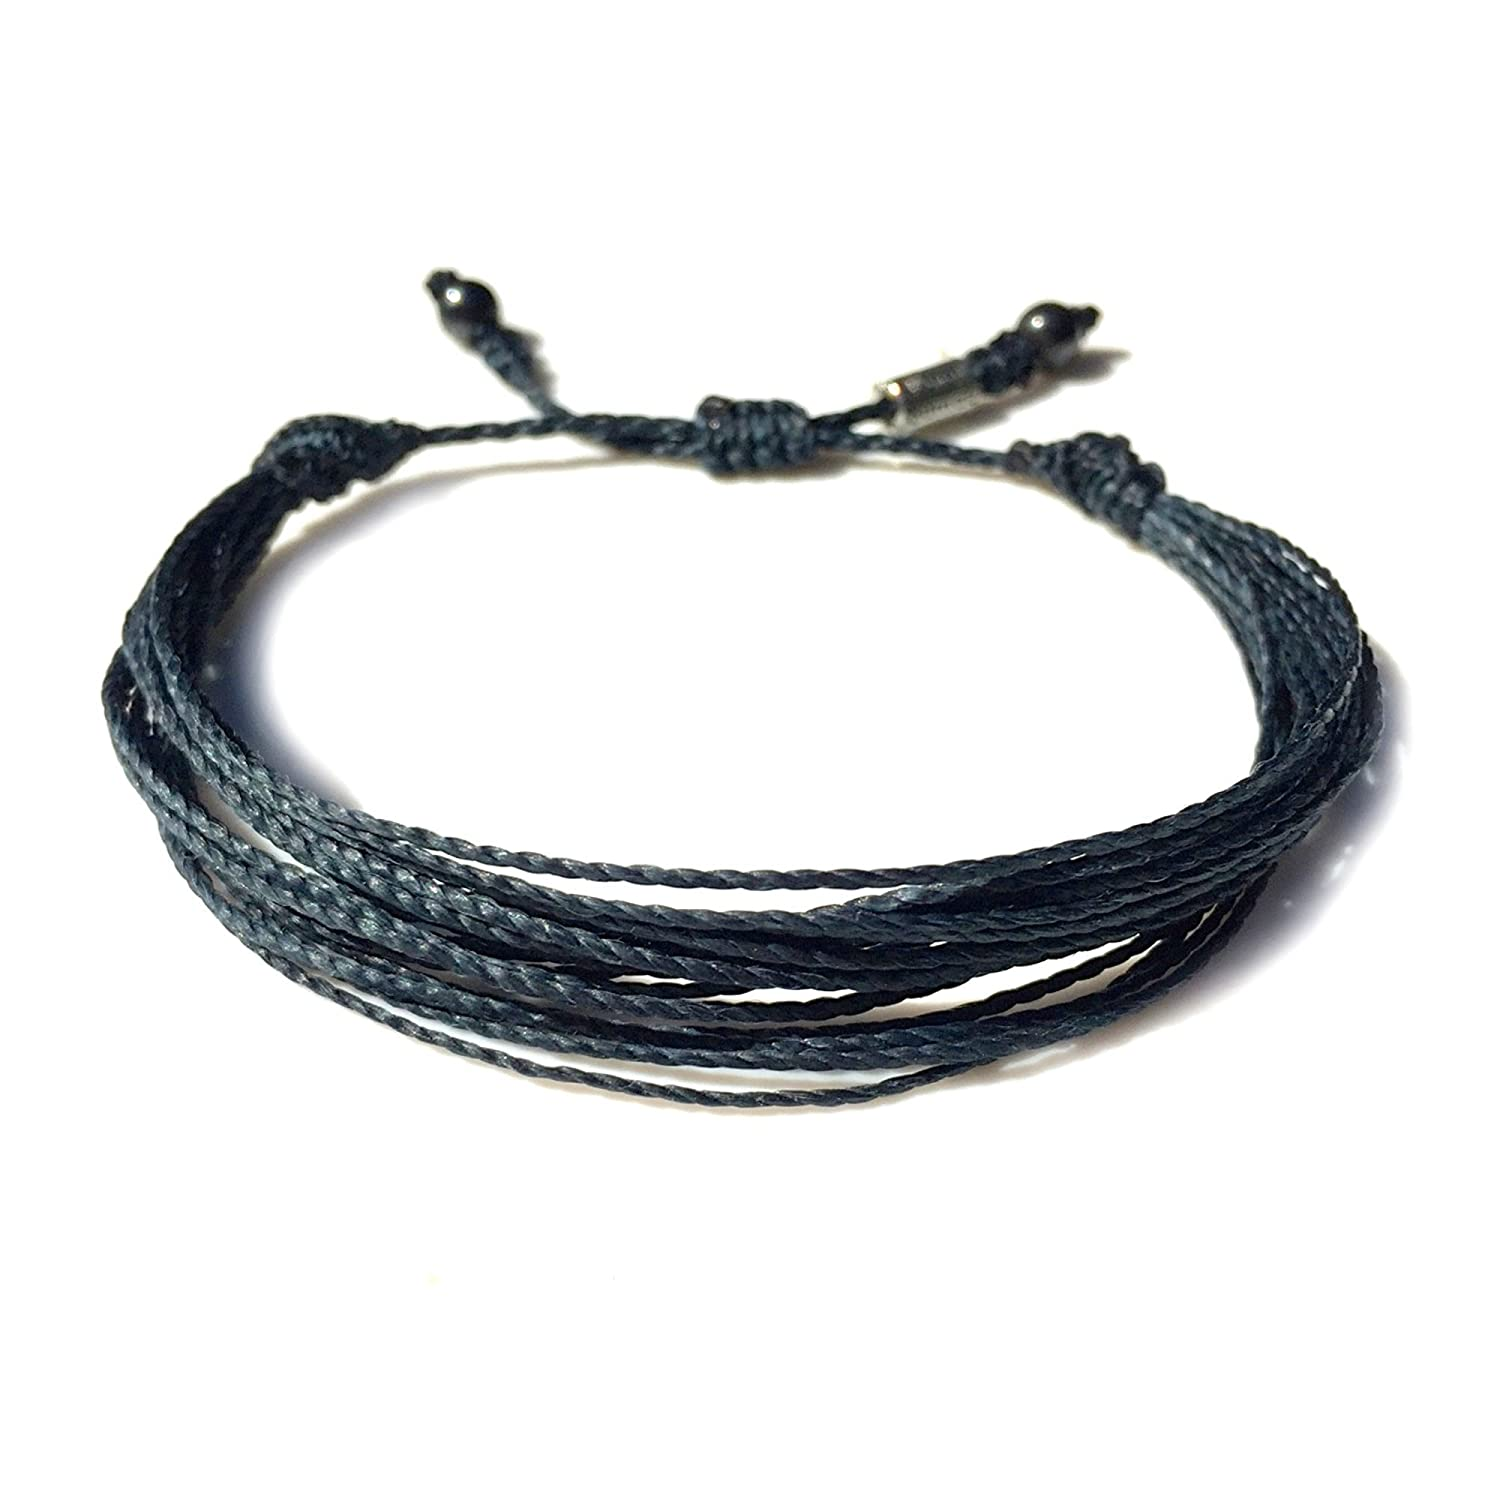 Unisex Navy String Friendship Surfer Bracelet with Hematite Stones: Handmade Multistrand Pull Cord Adjustable Nautical Sailor Beach Rope Bracelet for Men and Women by Rumi Sumaq